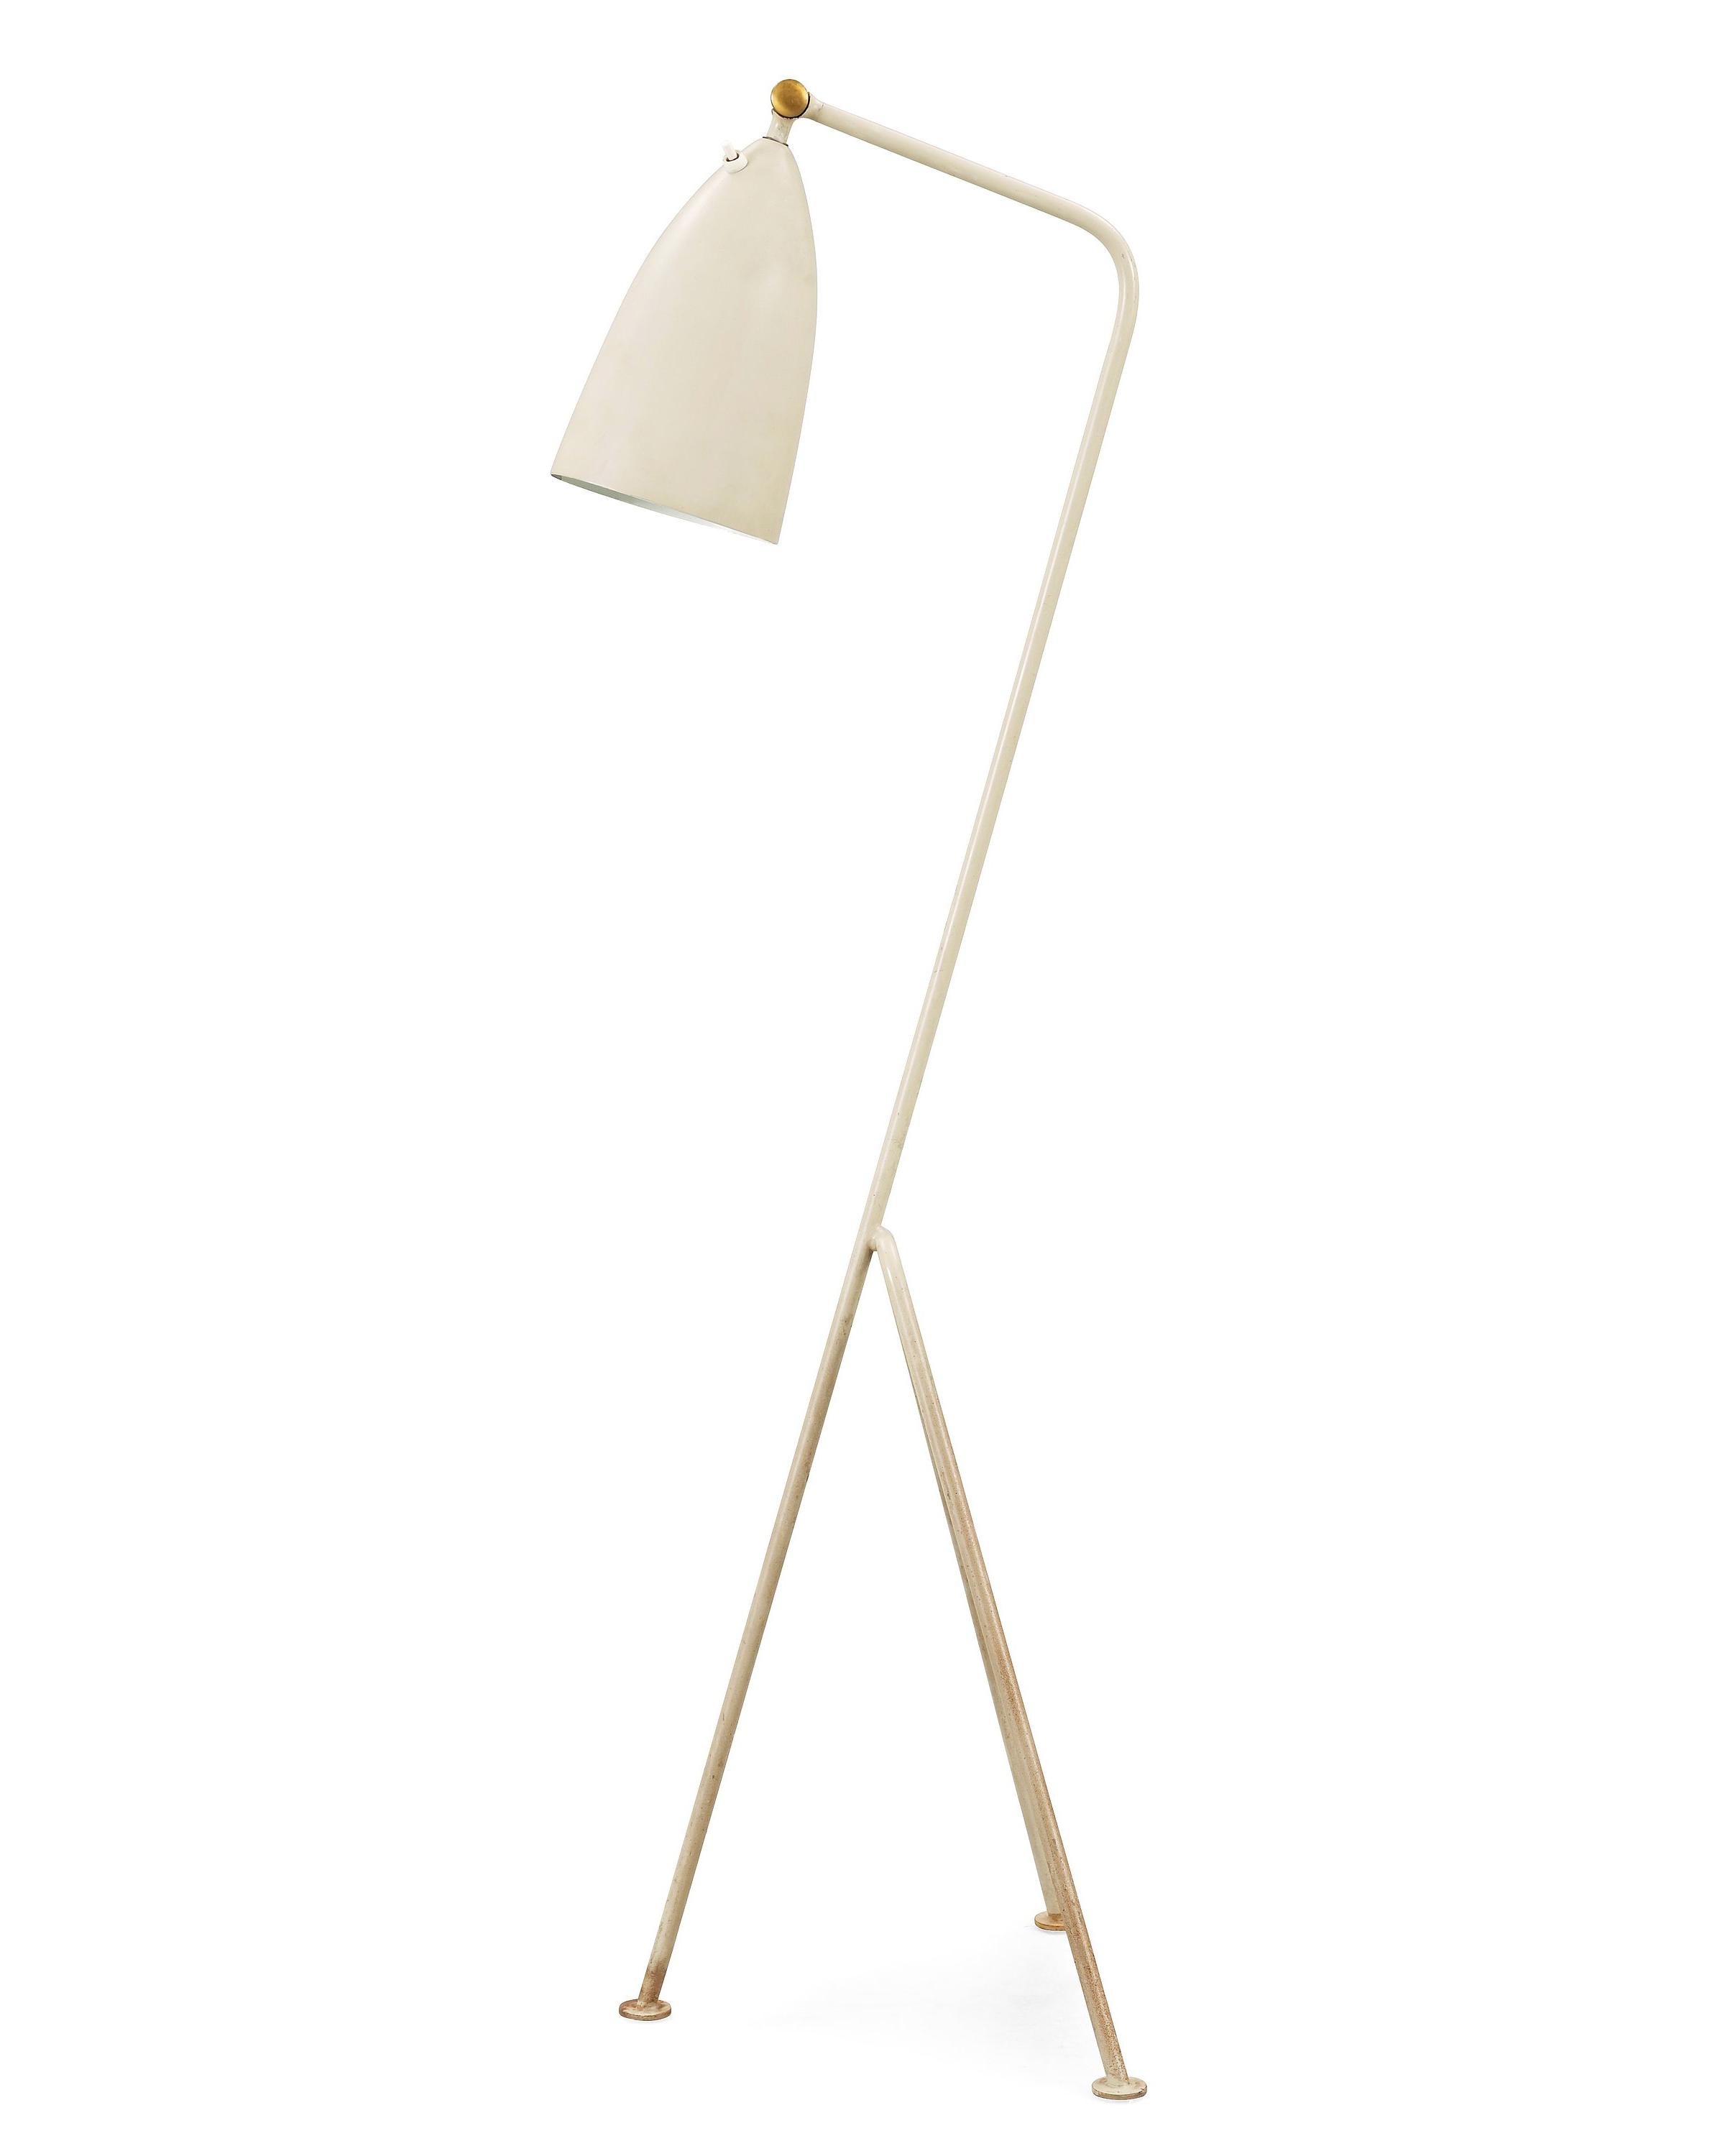 designapplause grasshopper floor lamp greta magnusson grossman. Black Bedroom Furniture Sets. Home Design Ideas